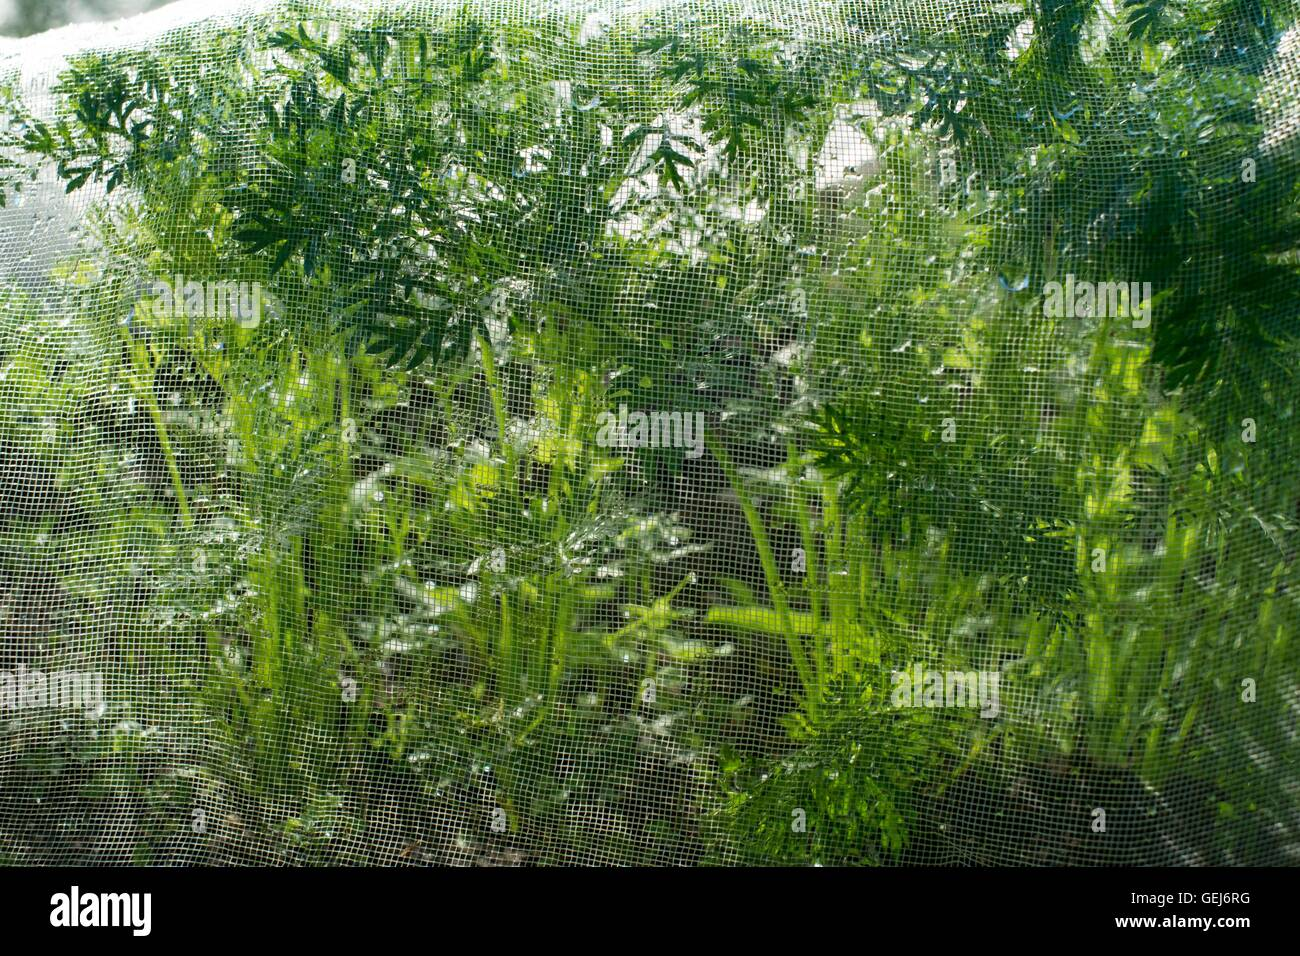 Carrots under insect mesh. - Stock Image